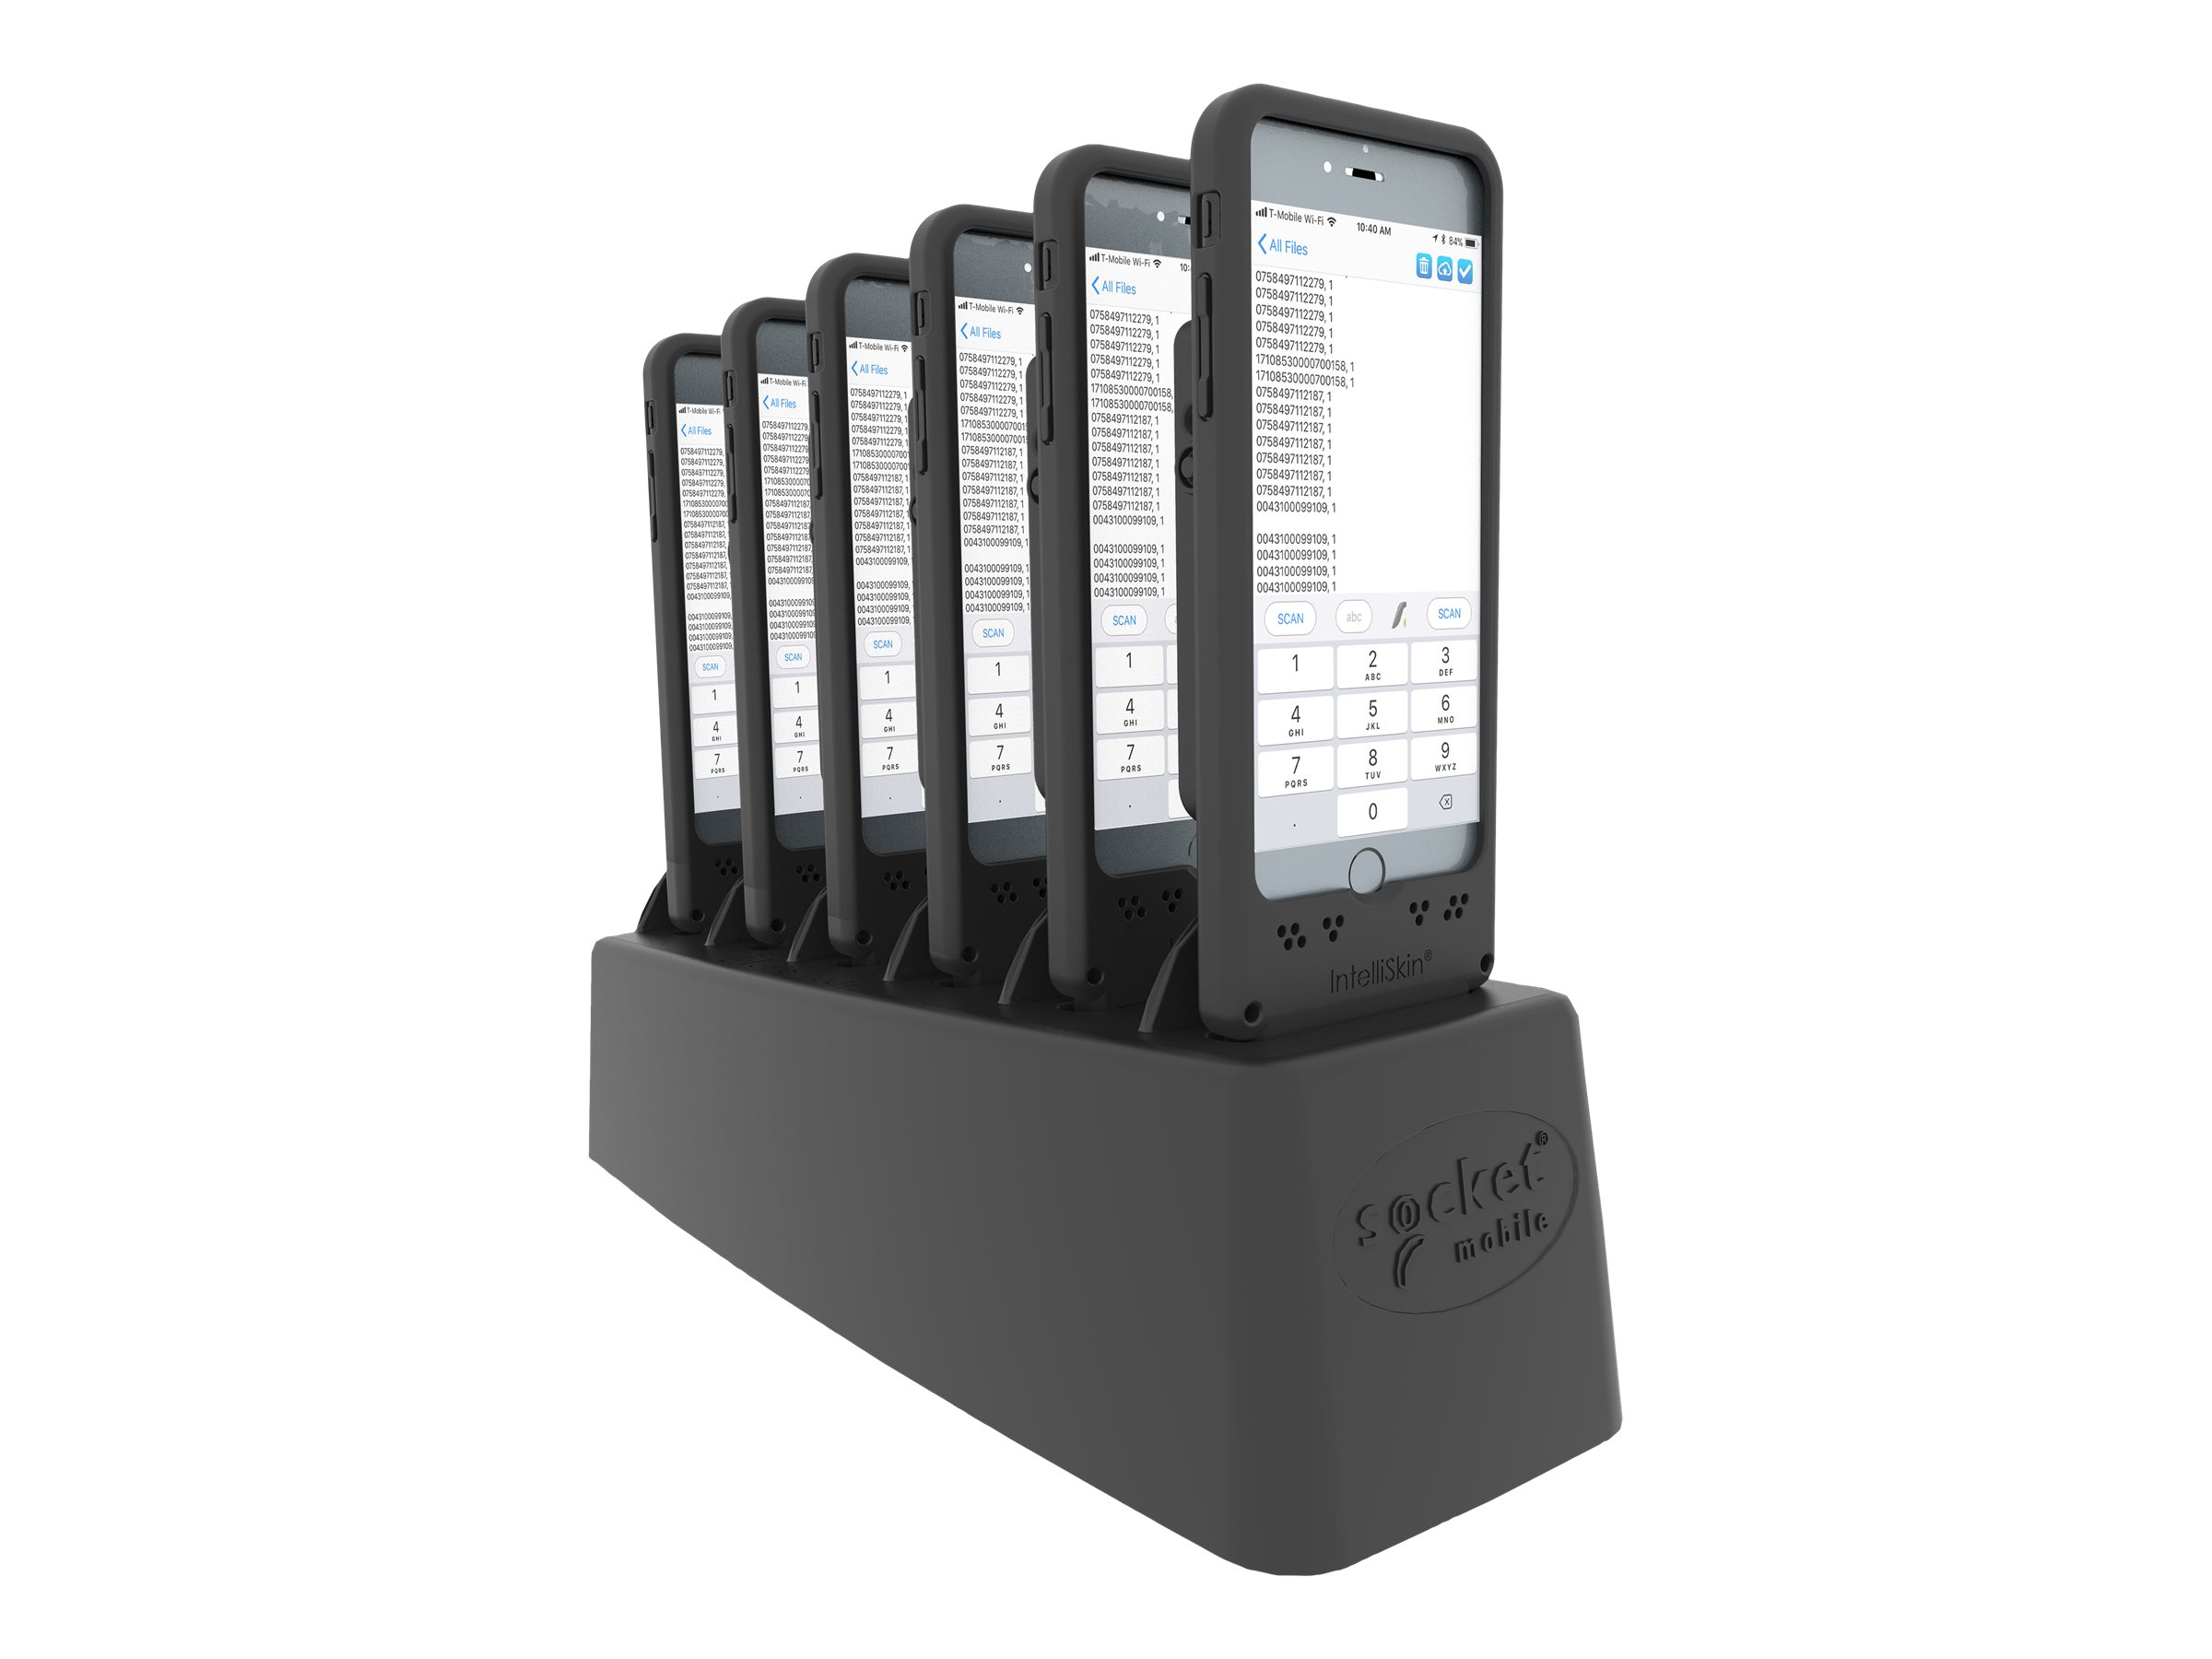 DuraSled DS840 - With 6 Bay Charger - Barcode-Scanner - Begleiter - 2D-Imager - decodiert